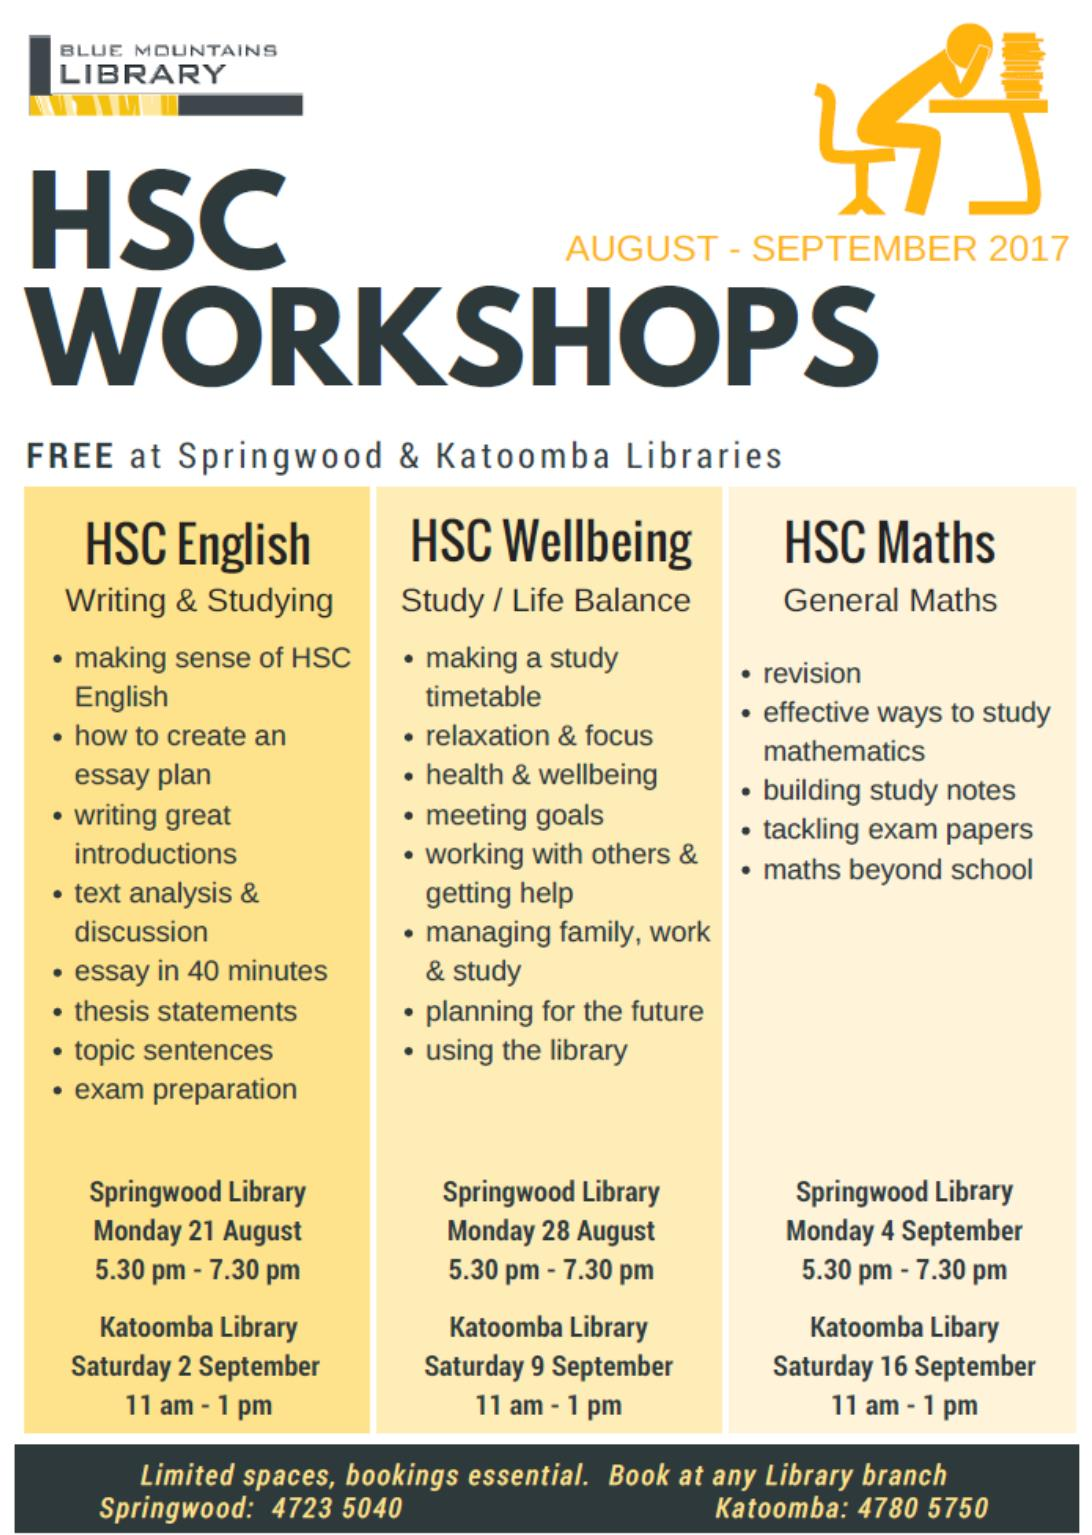 The Springwood Library Workshops Are On Monday Evenings From 5:30pm7:30pm  On Monday 21st August, 28th August And 4th September As This Workshop Is  Taking